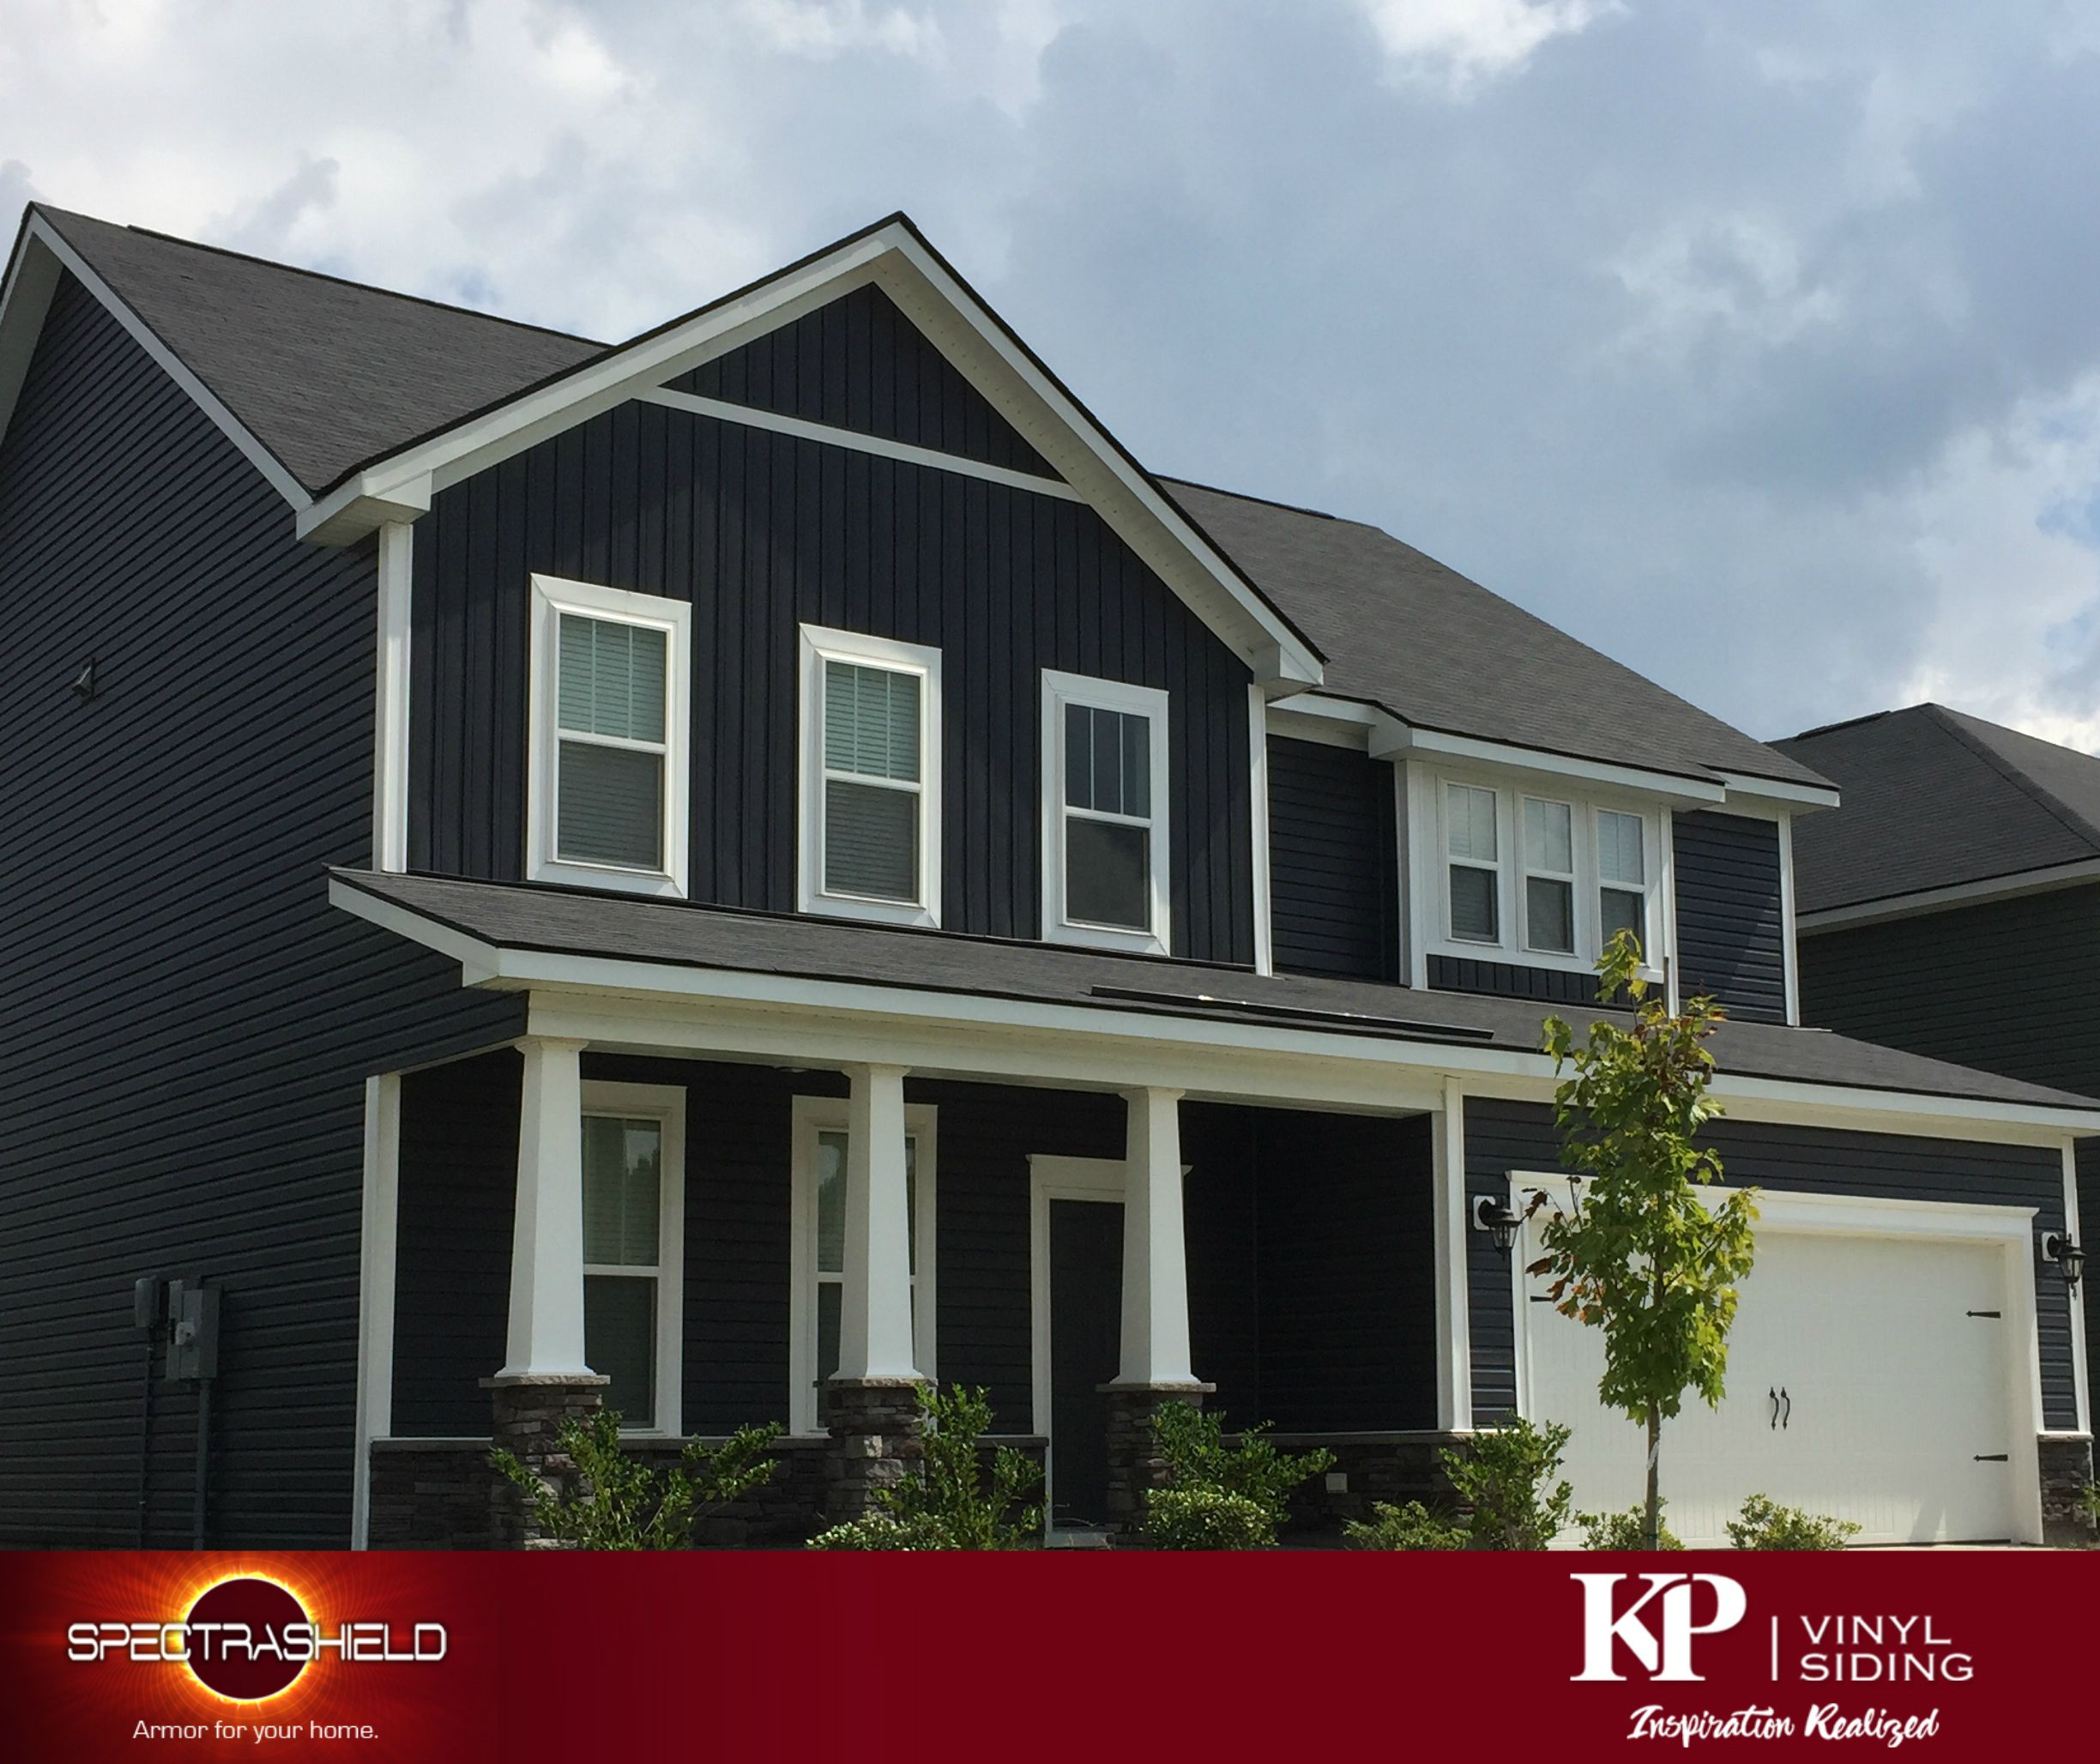 Manor A Bold Dark Color Vinyl Siding From Kp Vinyl Siding Learn More About This Color Vinyl Siding Exterior Vinyl Siding Colors Vinyl Siding Color Schemes